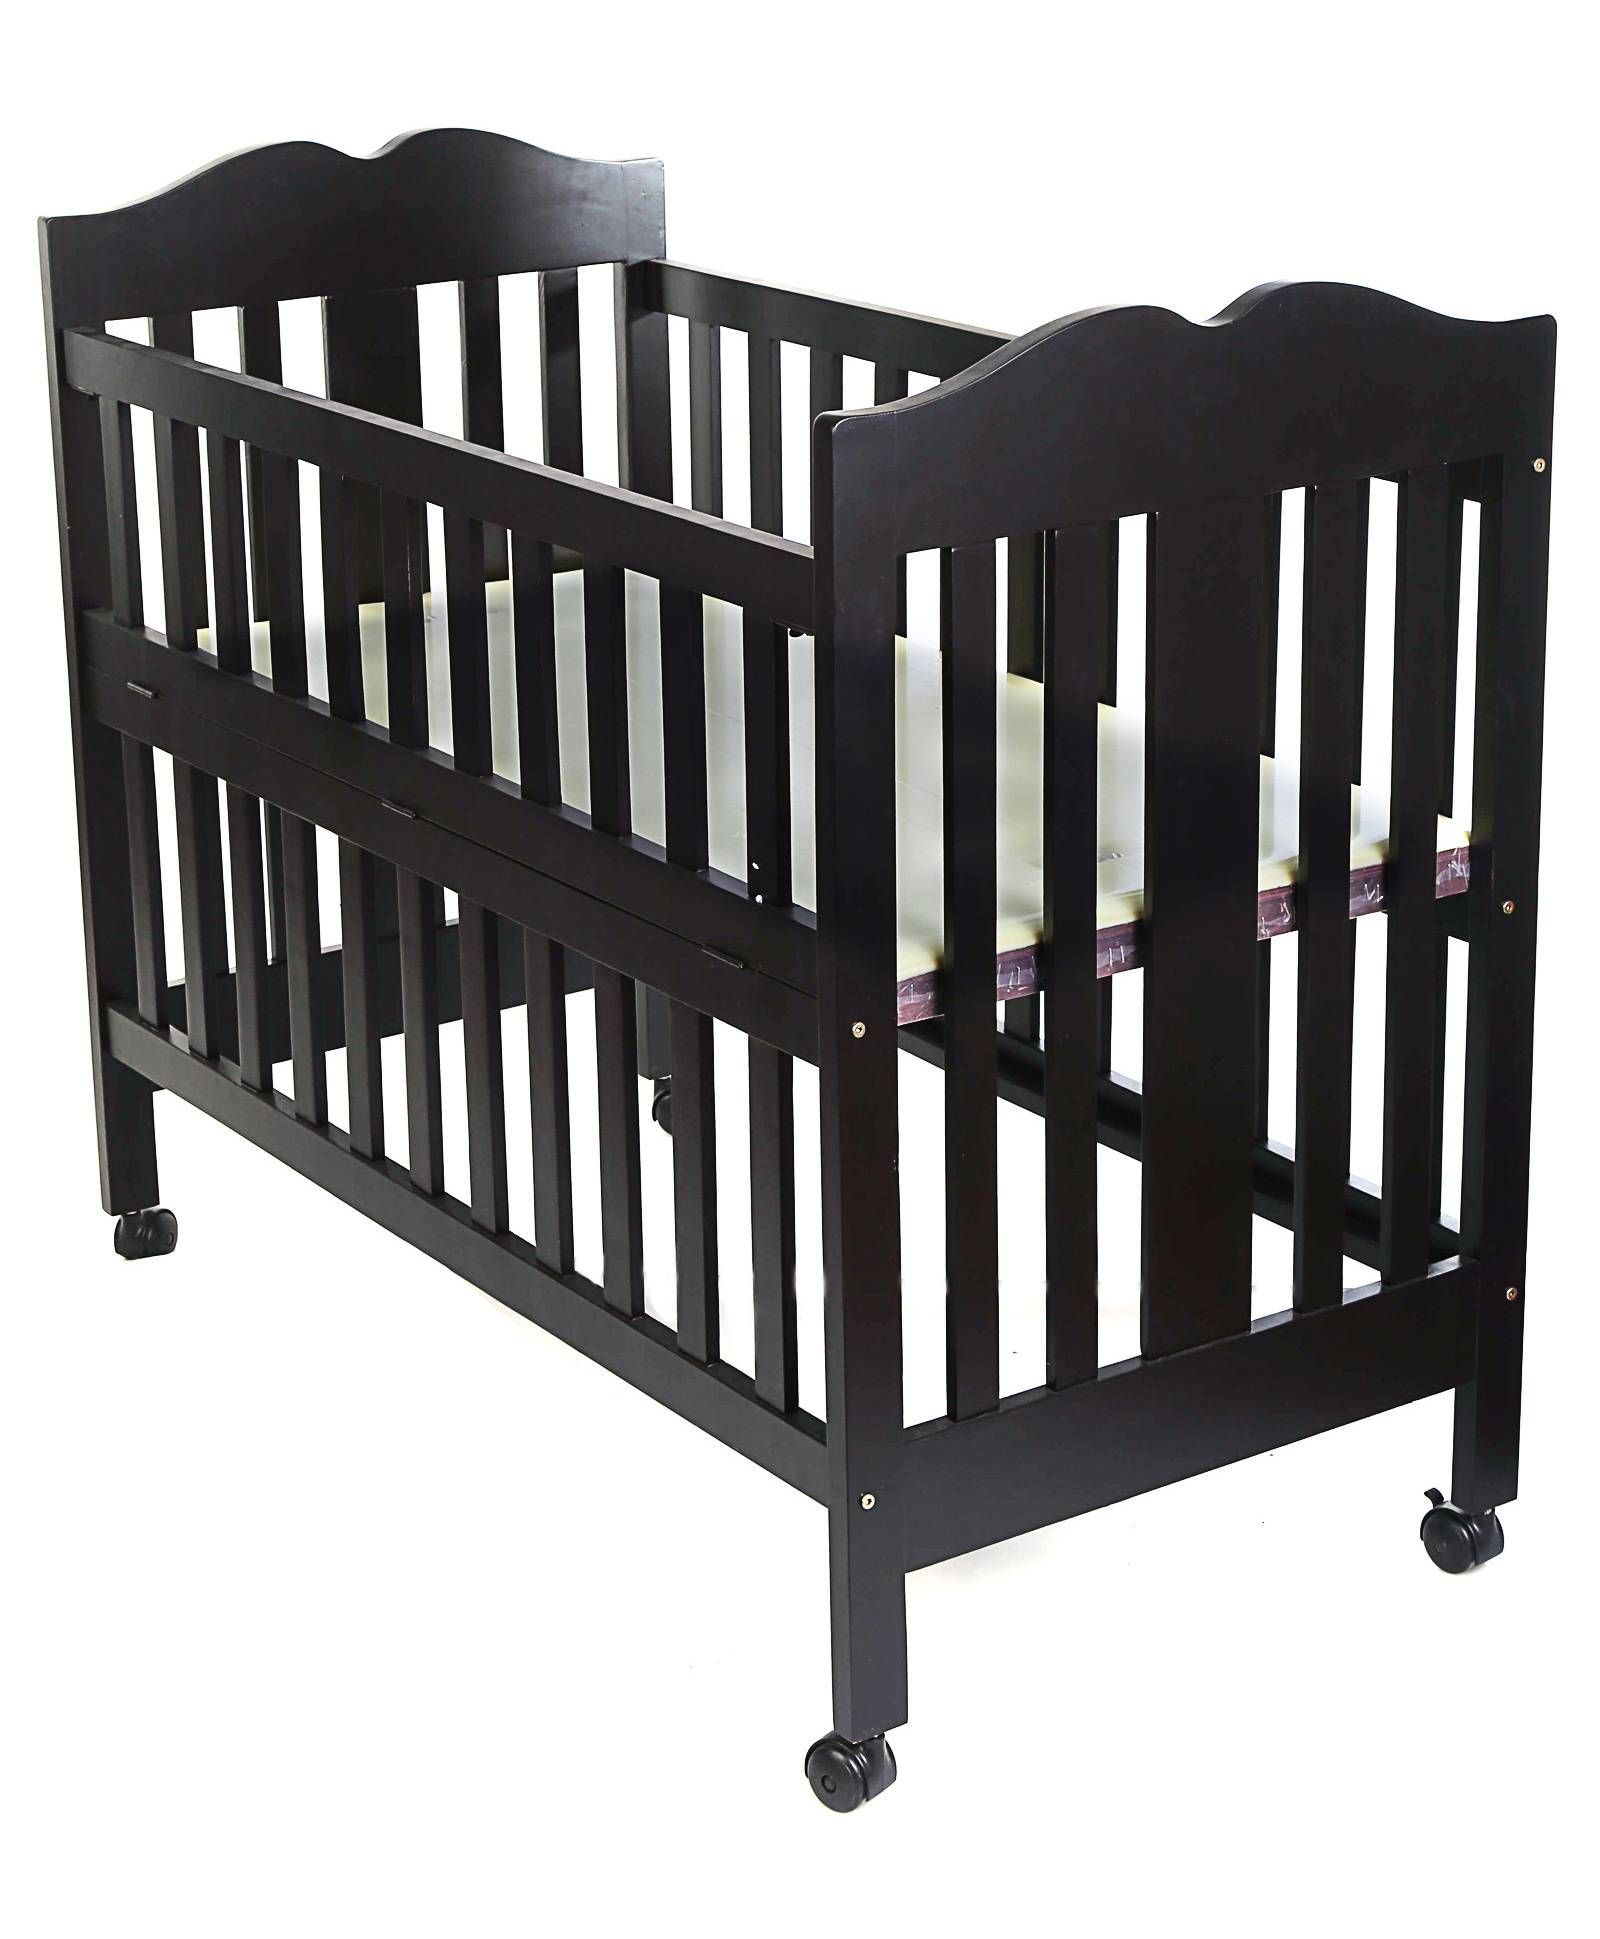 FirstCry cradle baby furniture shop shopping expert variety options range colors kids children parents mom dad Baby Furniture